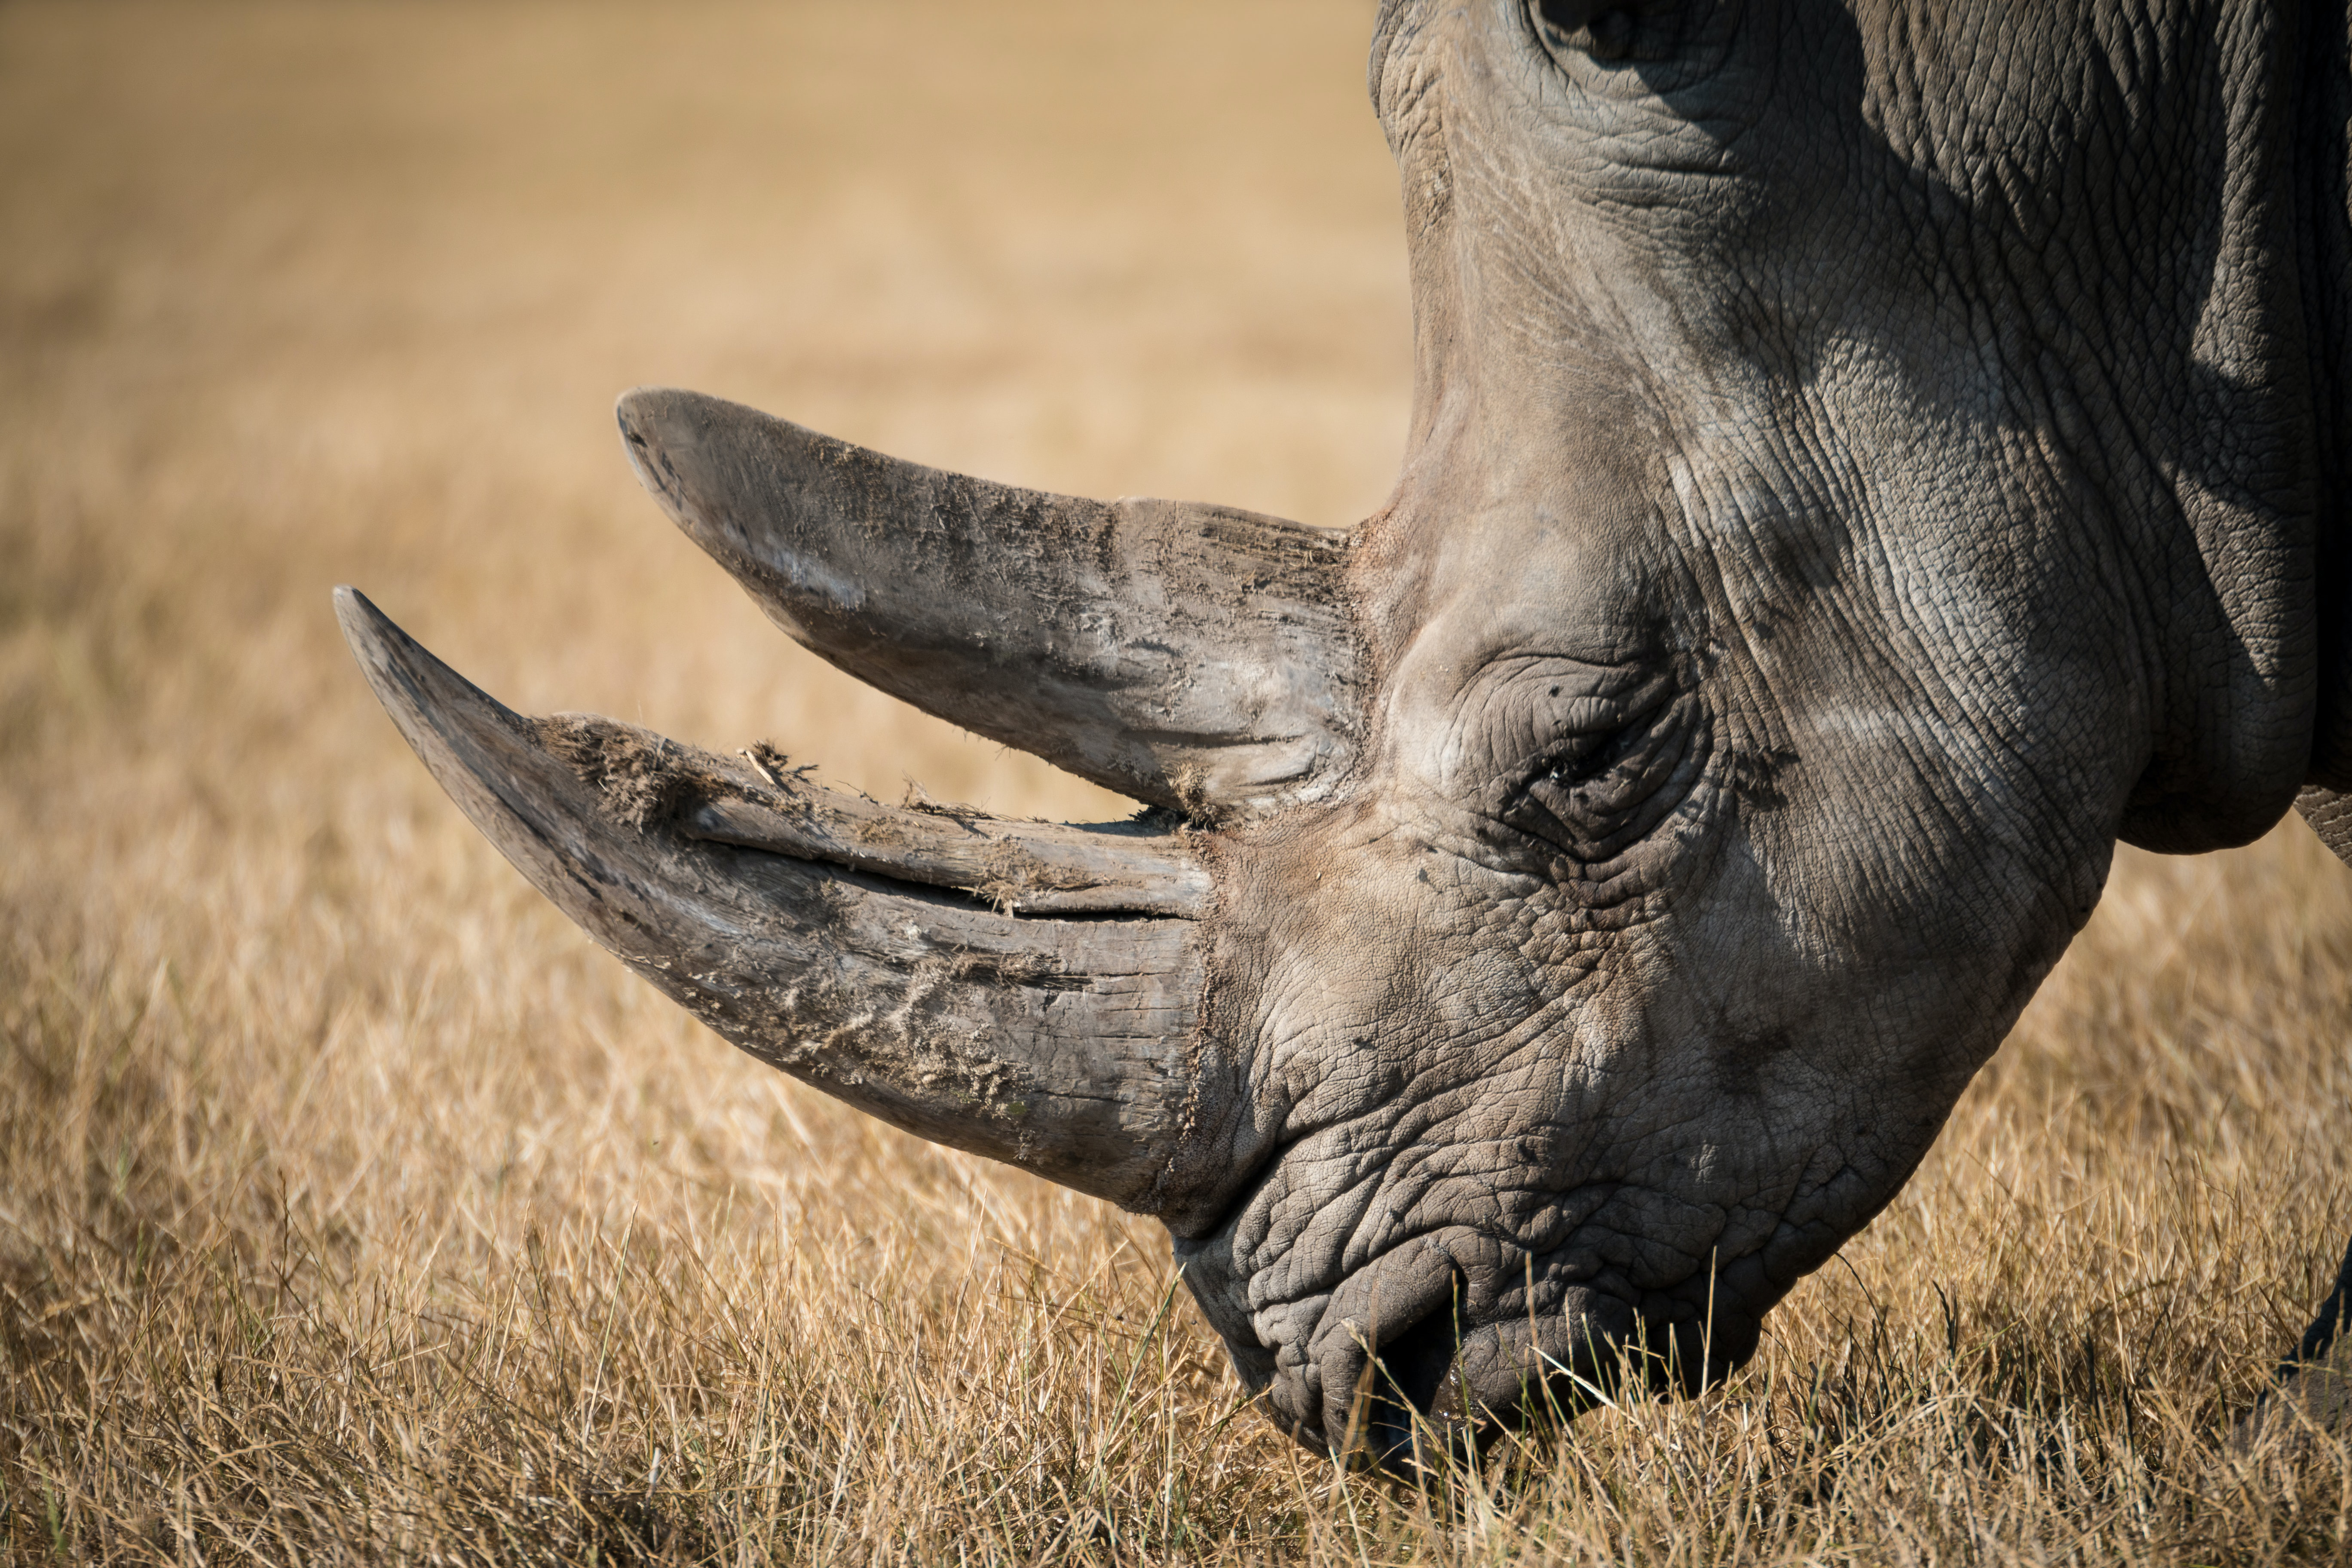 A close-up of the head of a rhinoceros grazing on dry grass